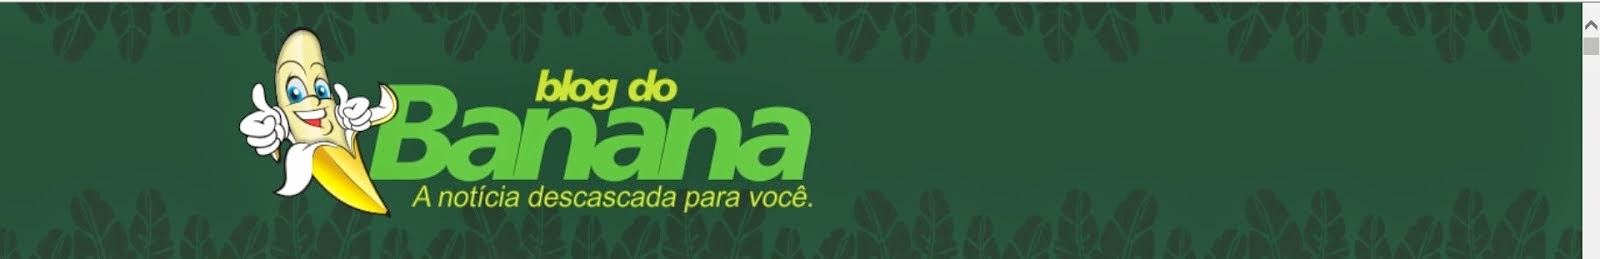 BLOG DO BANANA